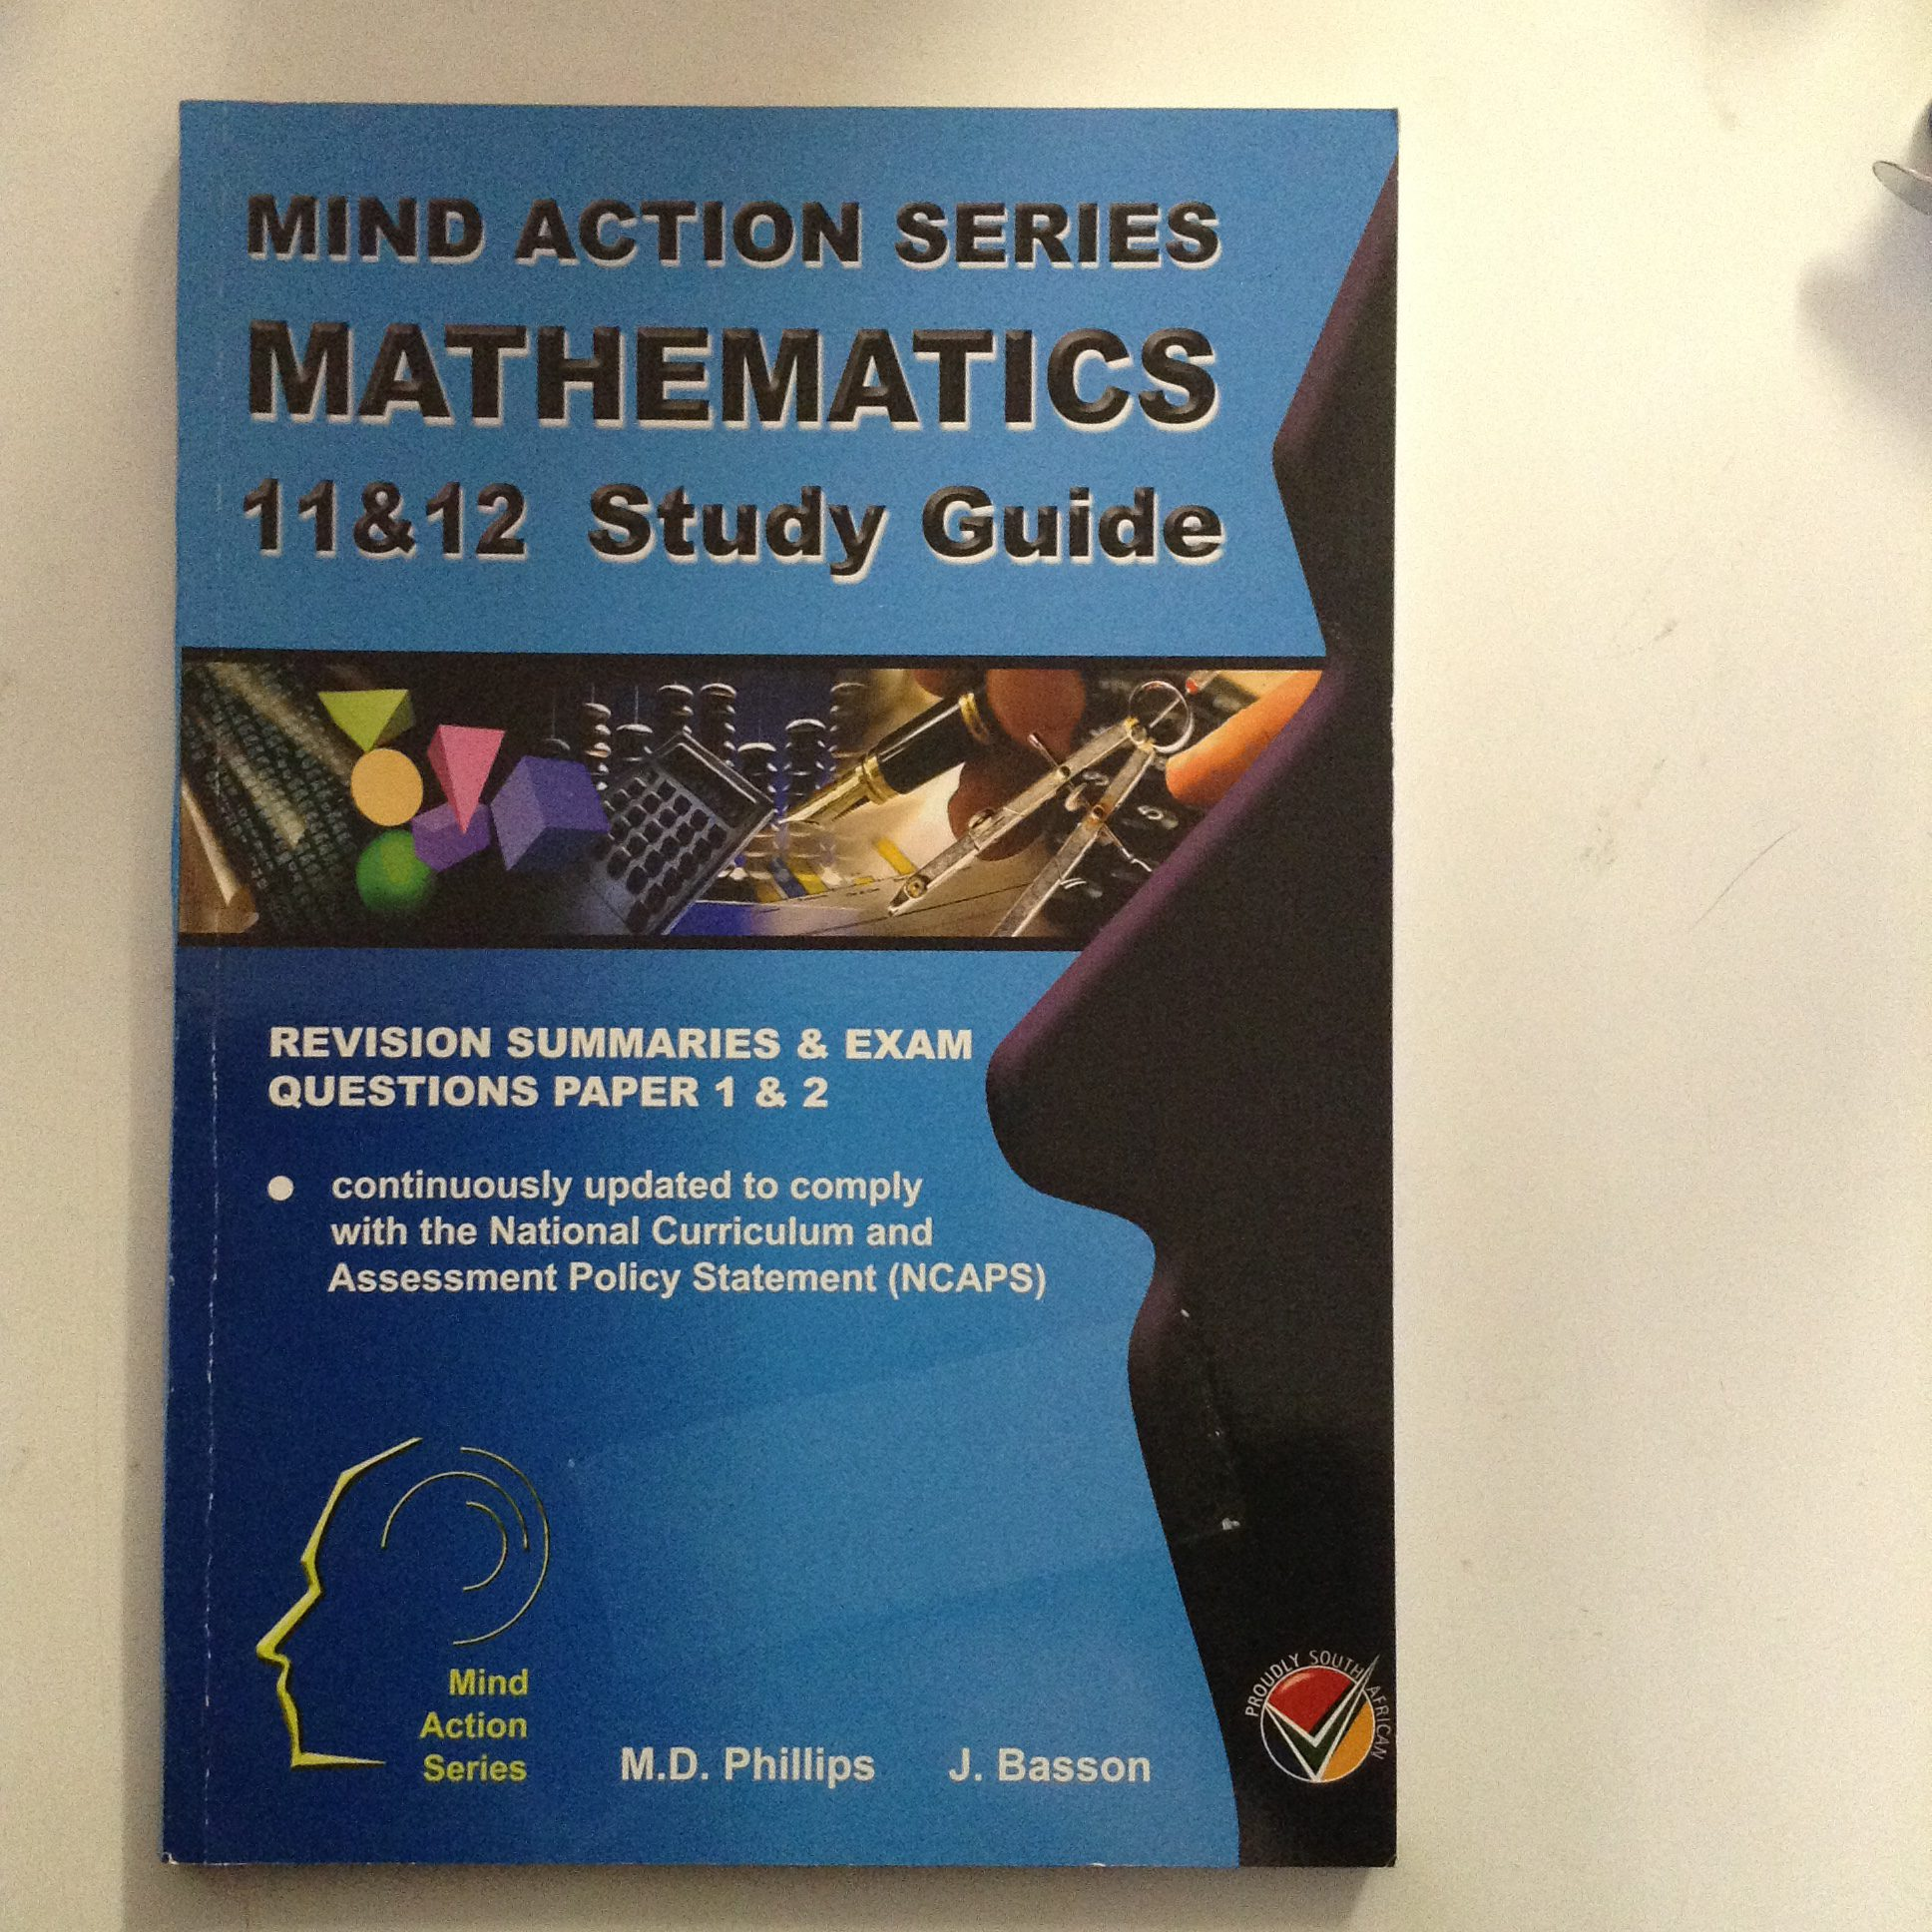 mind action series mathematics gr 11 12 study guide rh eduguru co za